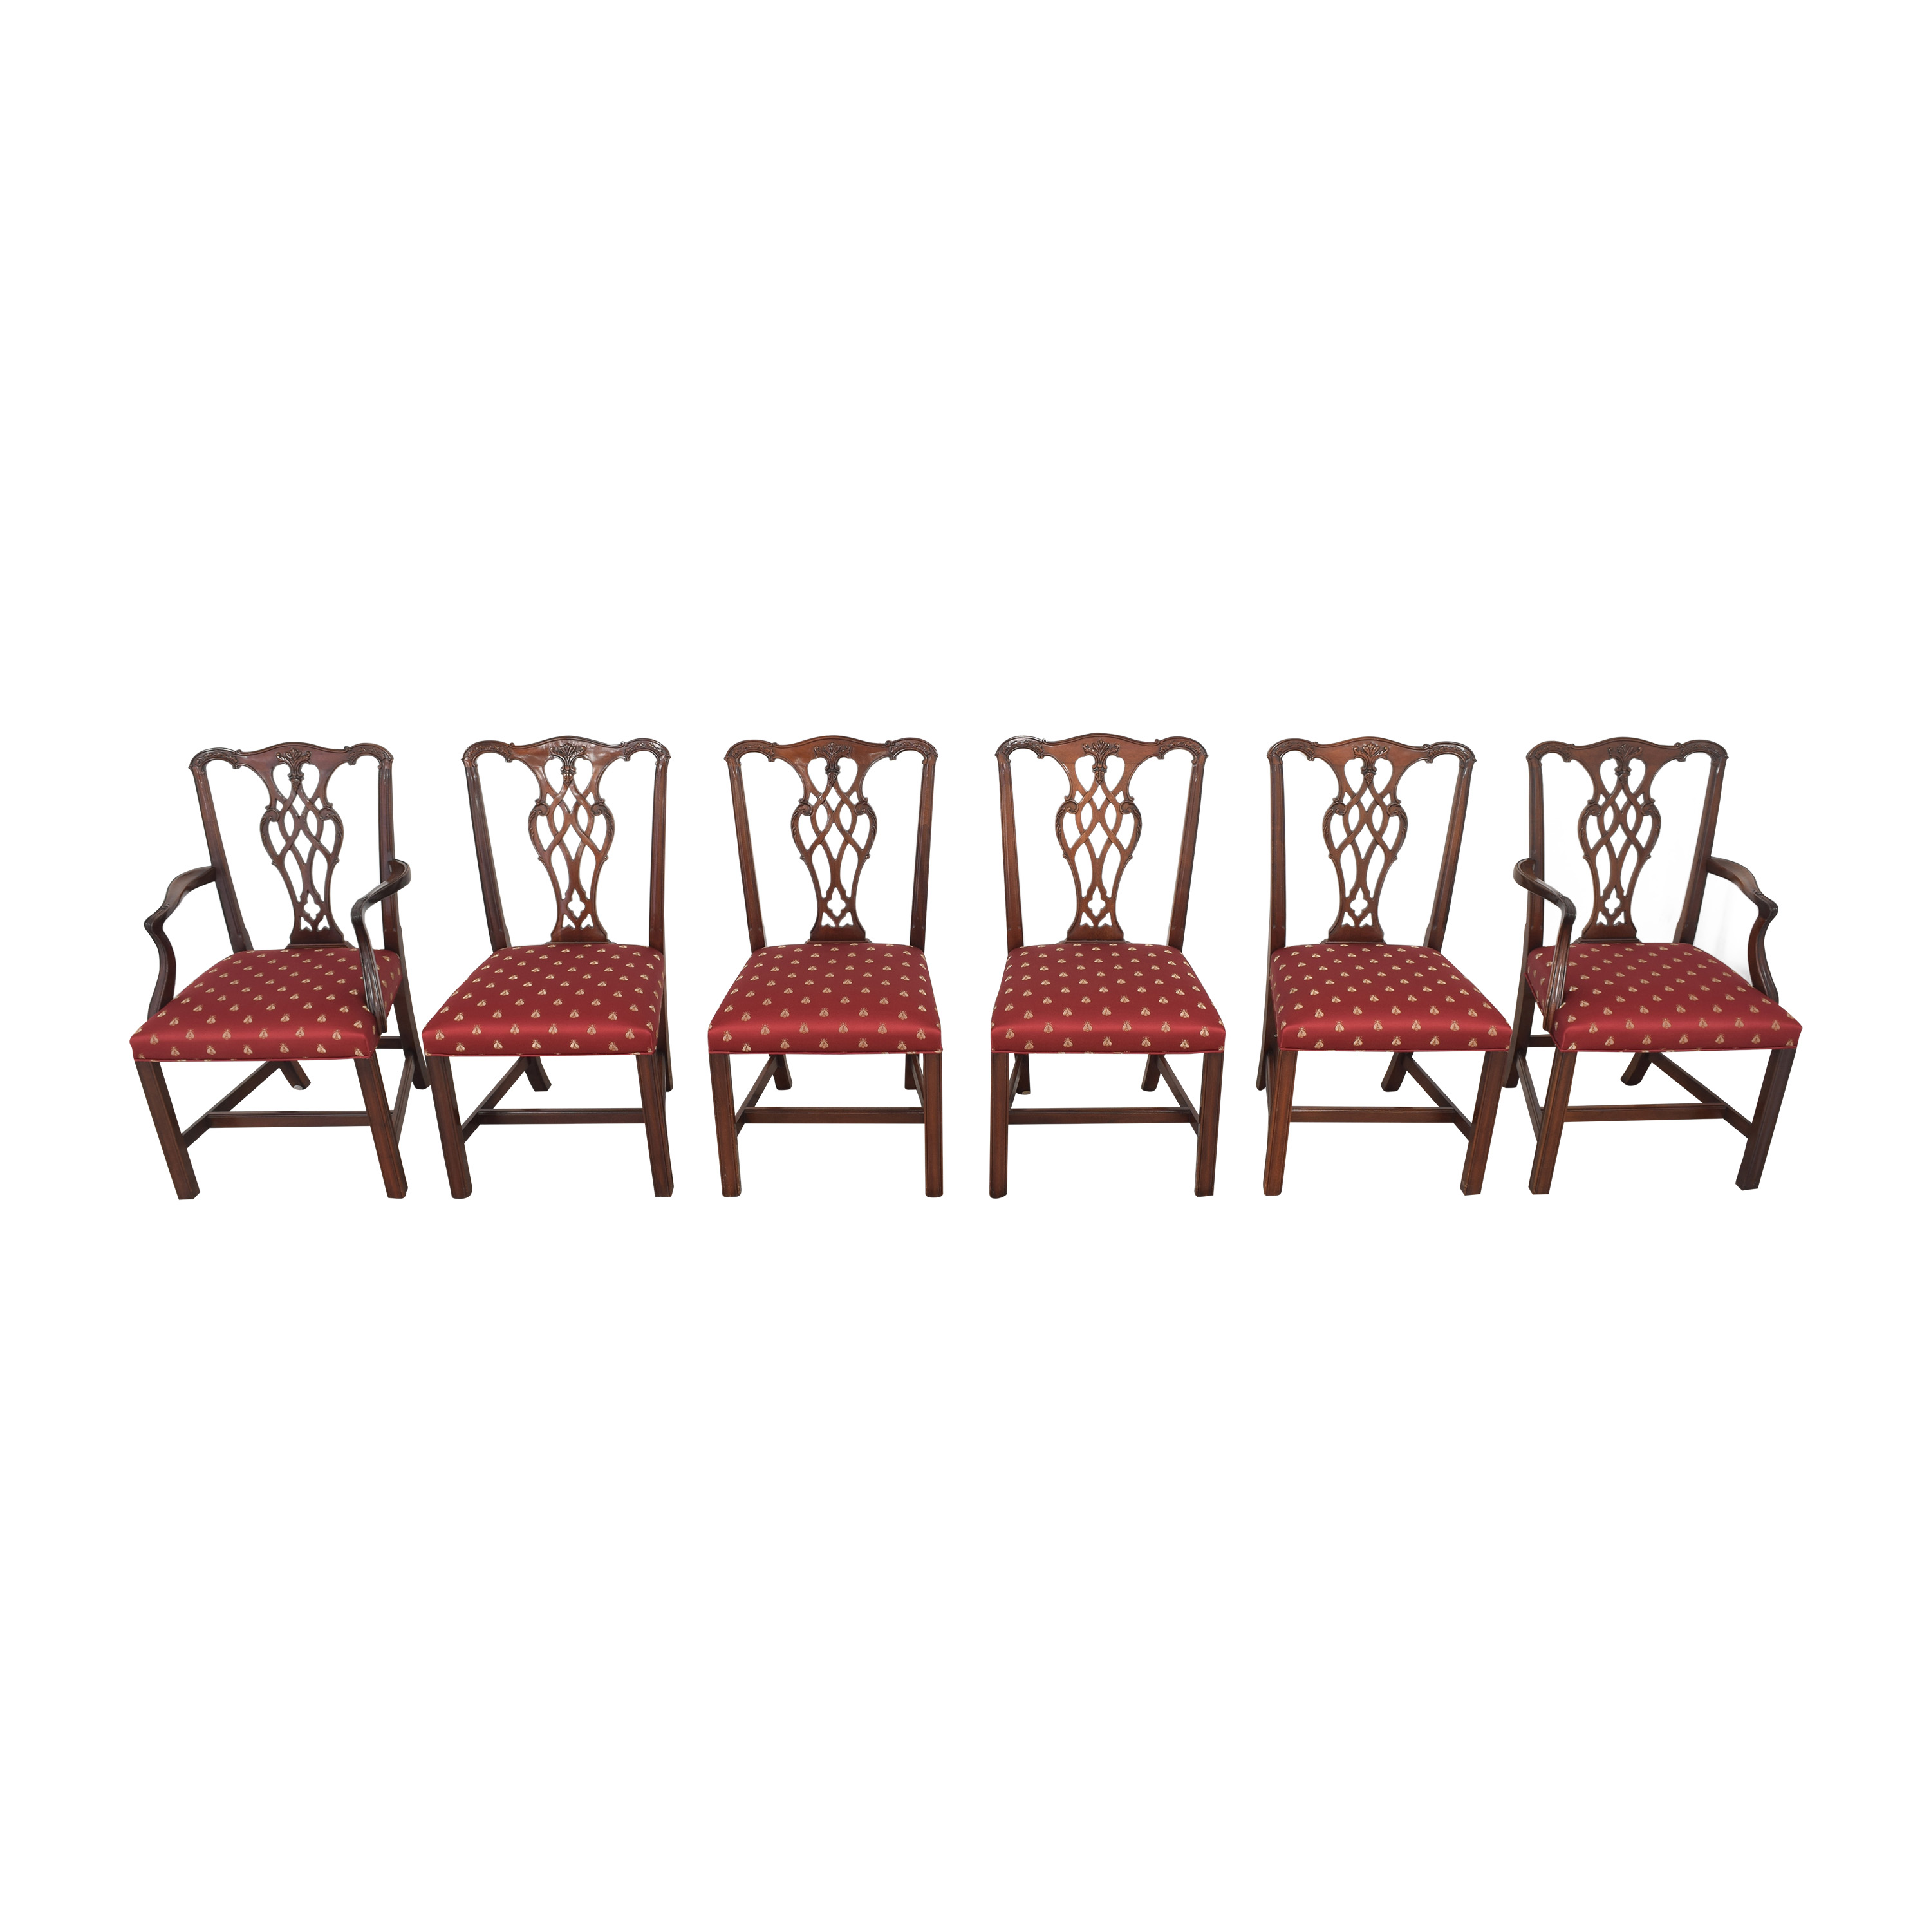 Councill Councill Chippendale Style Dining Chairs nyc